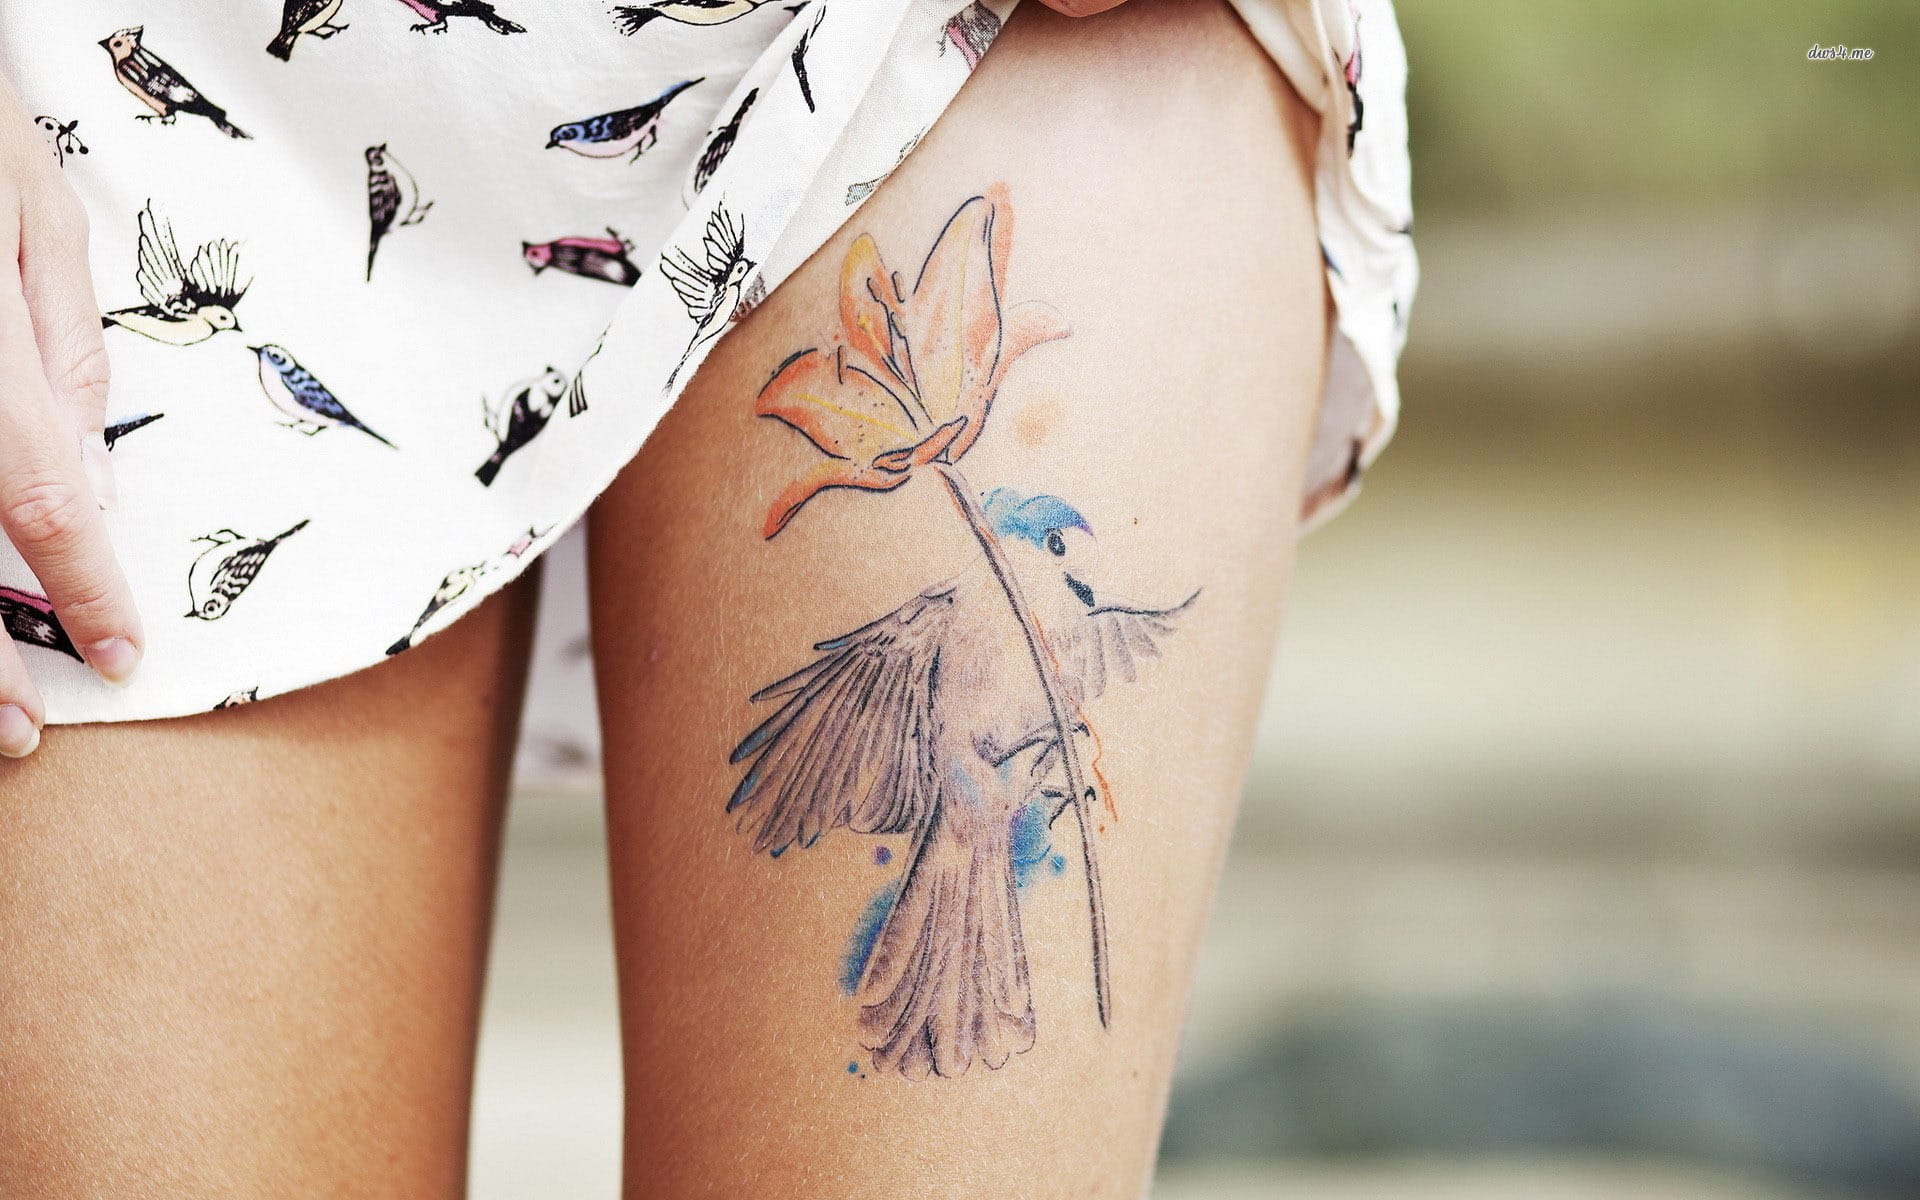 The Best Tattoo Designs For Men's And Woman's